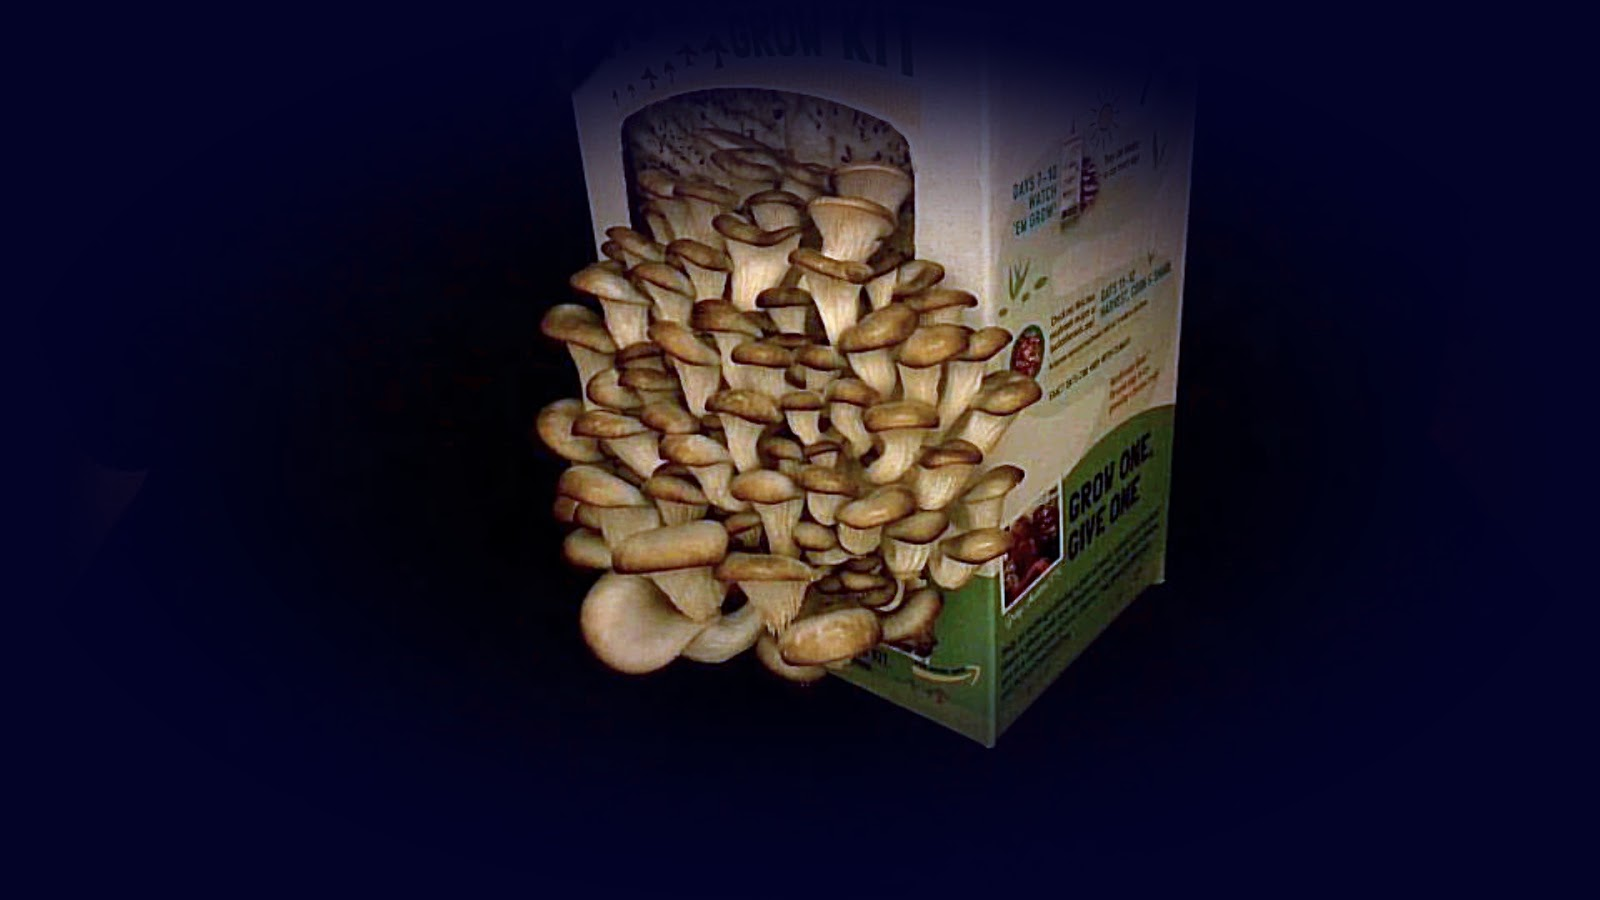 Random Bits: Growing Oyster Mushrooms First Time